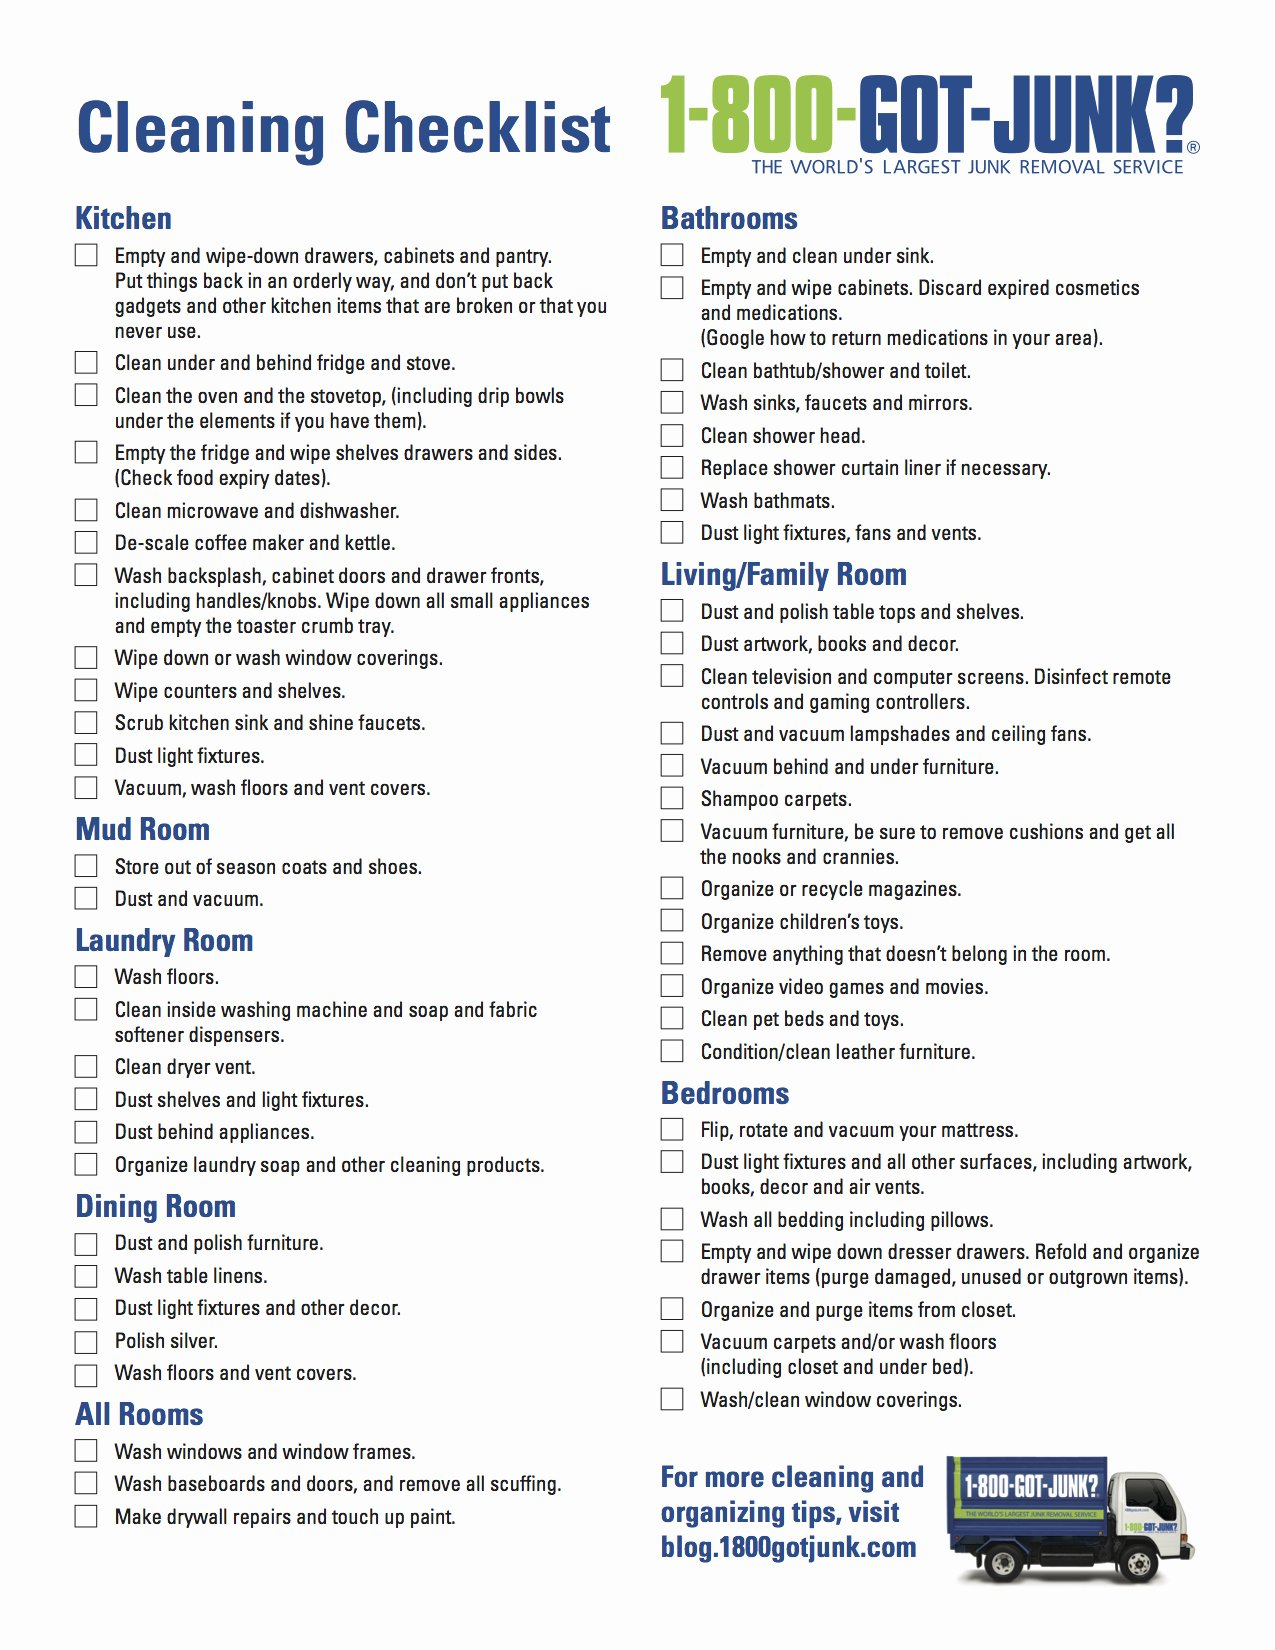 Professional House Cleaning Checklist Printable Fresh Cleaning Checklist